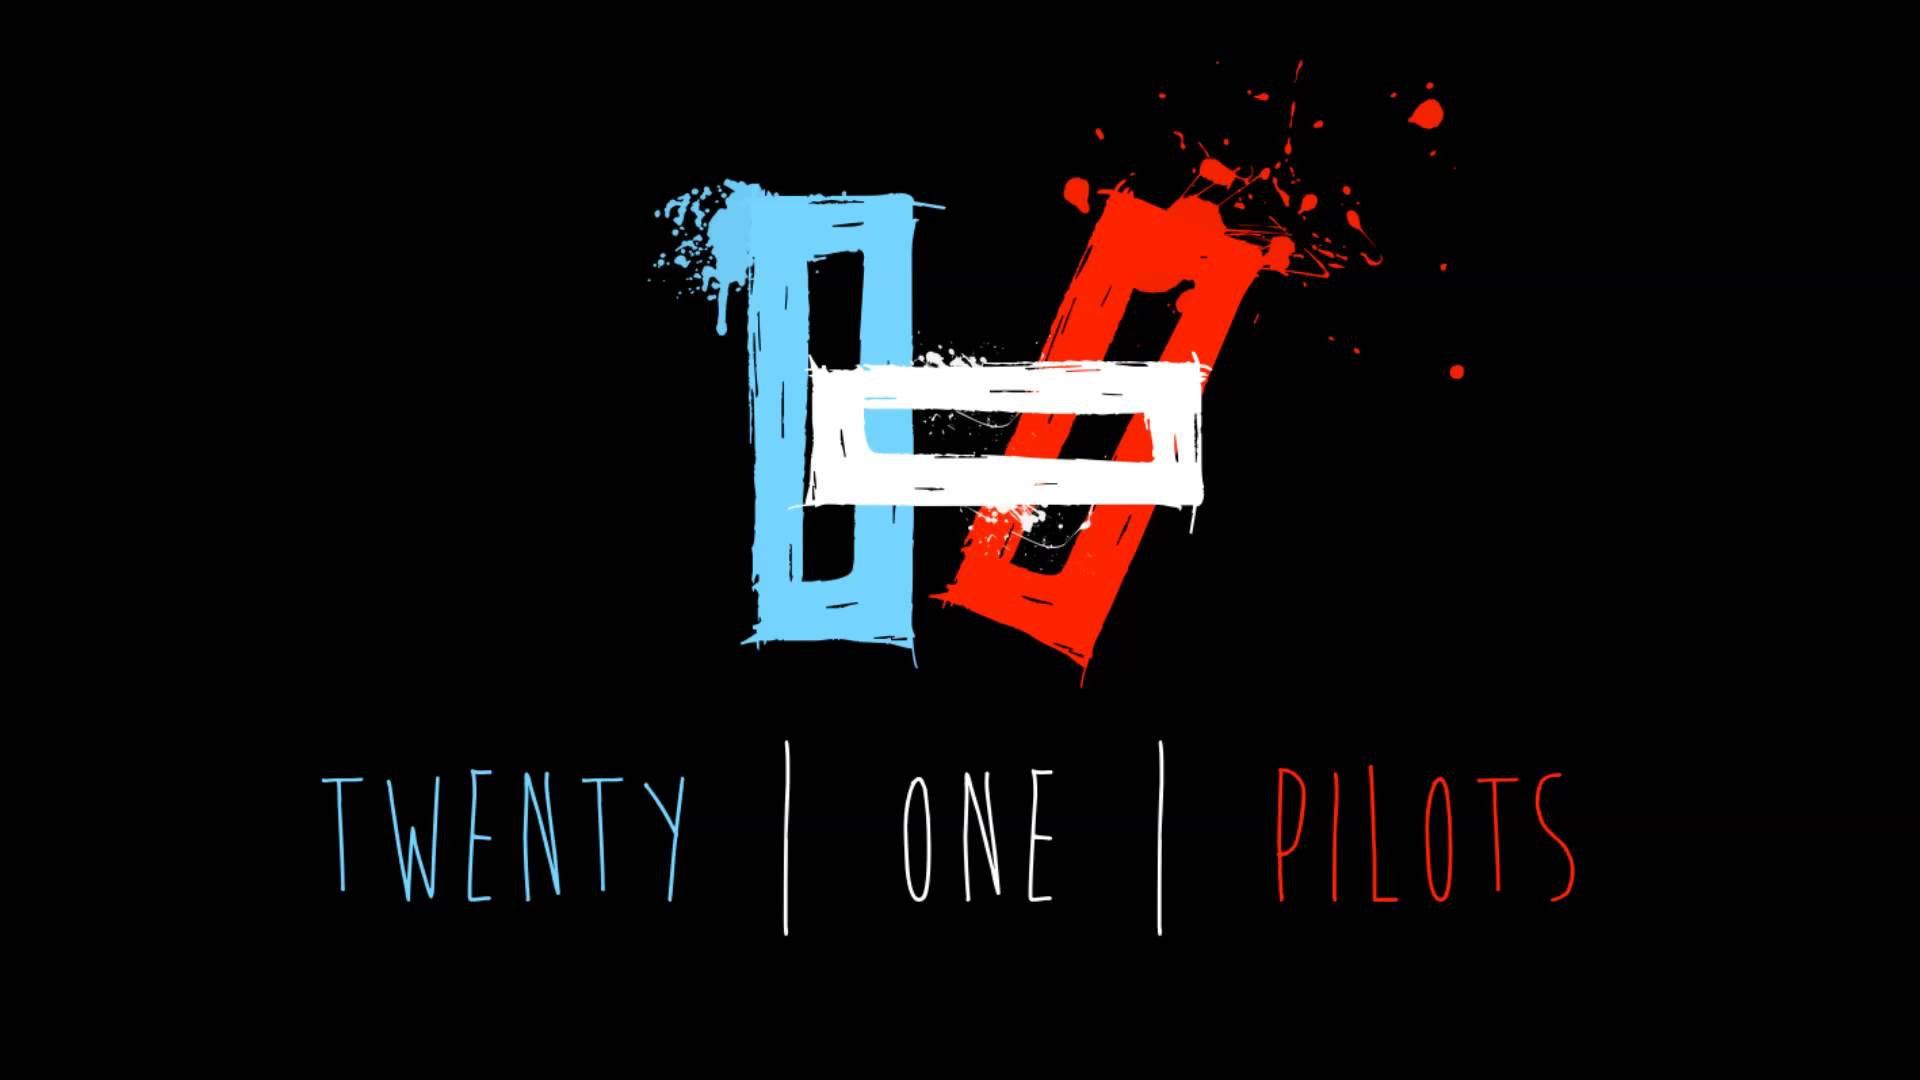 22 twenty one pilots fonds d 39 cran hd arri re plans for Twenty pictures